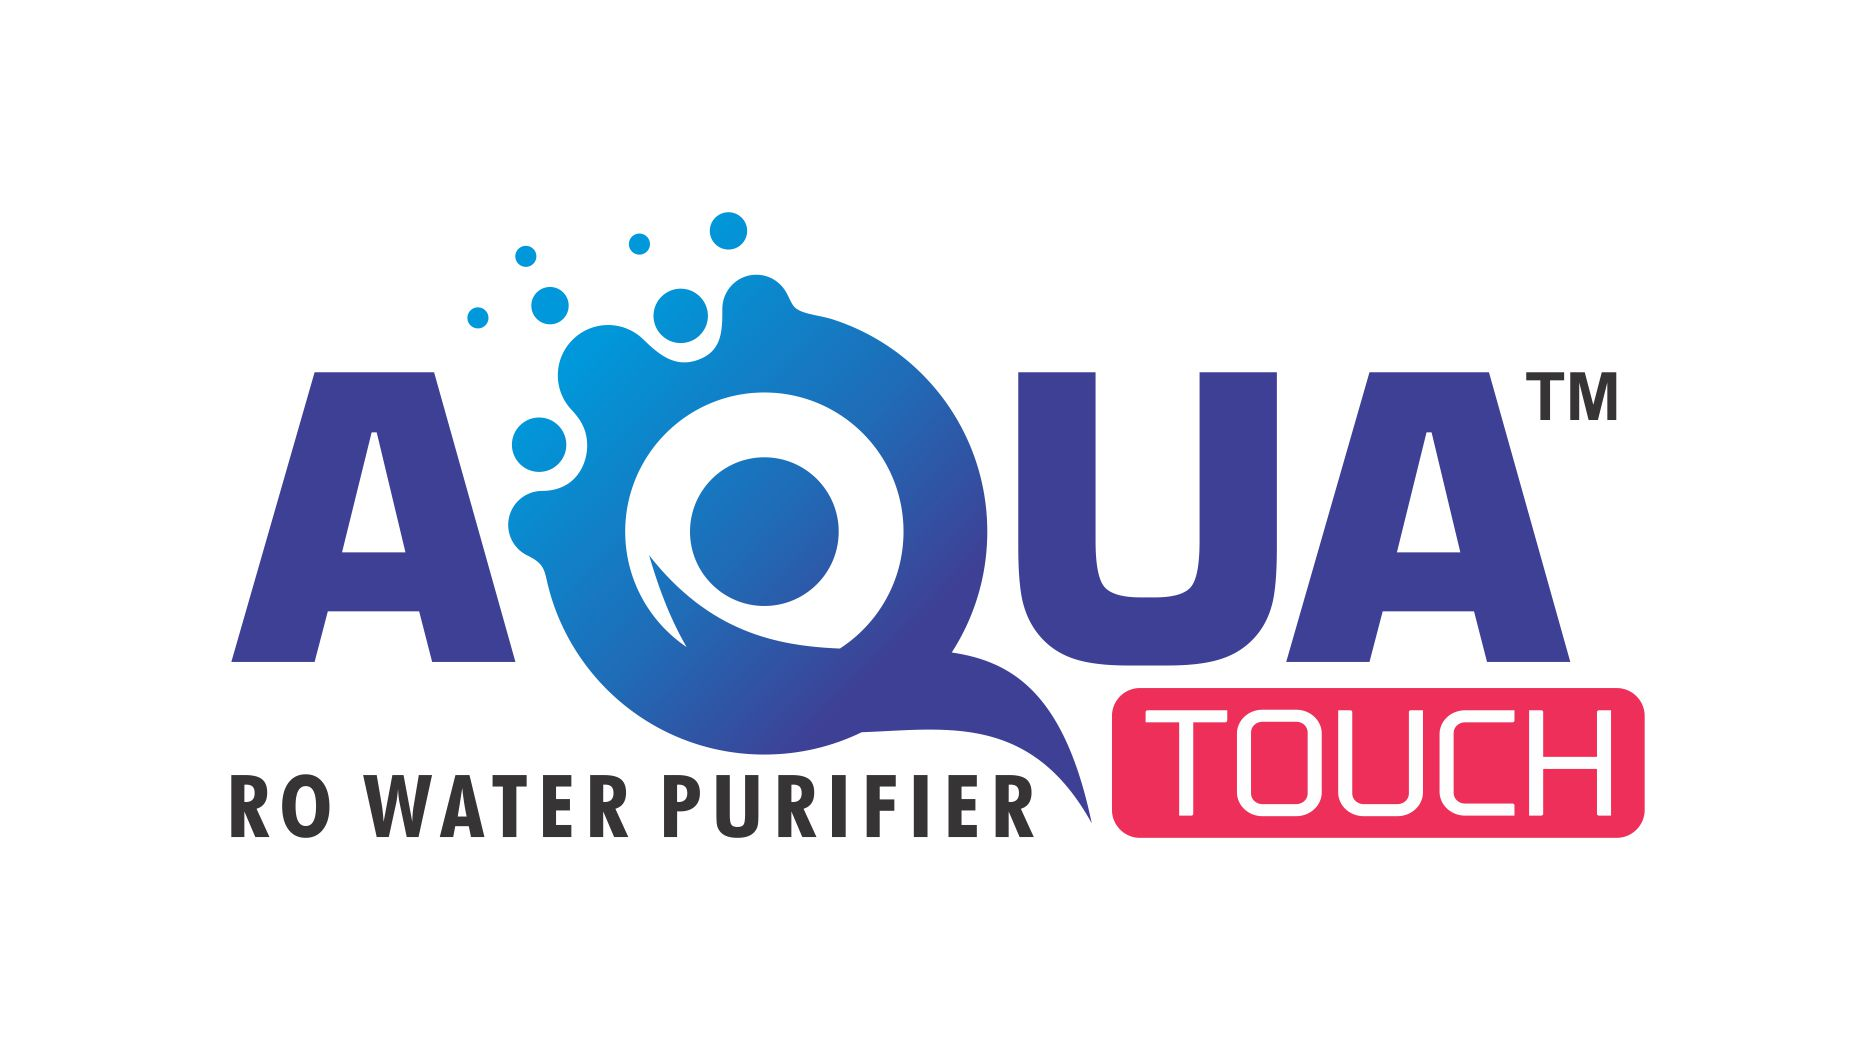 RO on rent in Dwarka,RO Service in Dwarka,RO Maintenance in Dwarka,RO AMC in Dwarka,Water Purifier in Dwarka,New RO system in Dwarka,Best RO service in Dwarka,RO Supplier in Dwarka,RO manufacturer in Dwarka,Cheap and best RO water Purifier in Dwarka,ro mac in delhi,ro water purifier in delhi,ro amc in janakpuri,ro amc in najafgarh,ro amc in uttamnagar,ro amc in west delhi,Aquatouch,Aquatouch ro,Aquatouch Dwarka,Ro sales in Dwarka,Ro Service in Dwarka,Ro Service in Najafgarh,Ro Service in Uttam Nagar,Ro Service in Janakpuri,Ro sales in Janakpuri,Ro sales in Uttam Nagar,Ro sales in Najafgarh,Water Purifier sales in Dwarka,Water Purifier sales in Janakpuri,Water Purifier sales in Uttam nagar,Water Purifier sales in Njafgarh,Water Purifier service in Uttam Nagar,Water Purifier service in  Dwarka,Water Purifier service in  Janakpuri,Water Purifier service in  Najafgarh,RO Sales and service in delhi,ro sales and services,RO SERVICE IN UTTAMNAGAR,RO SERVICE IN JANAKPURI,RO SERVICE IN DWARKA